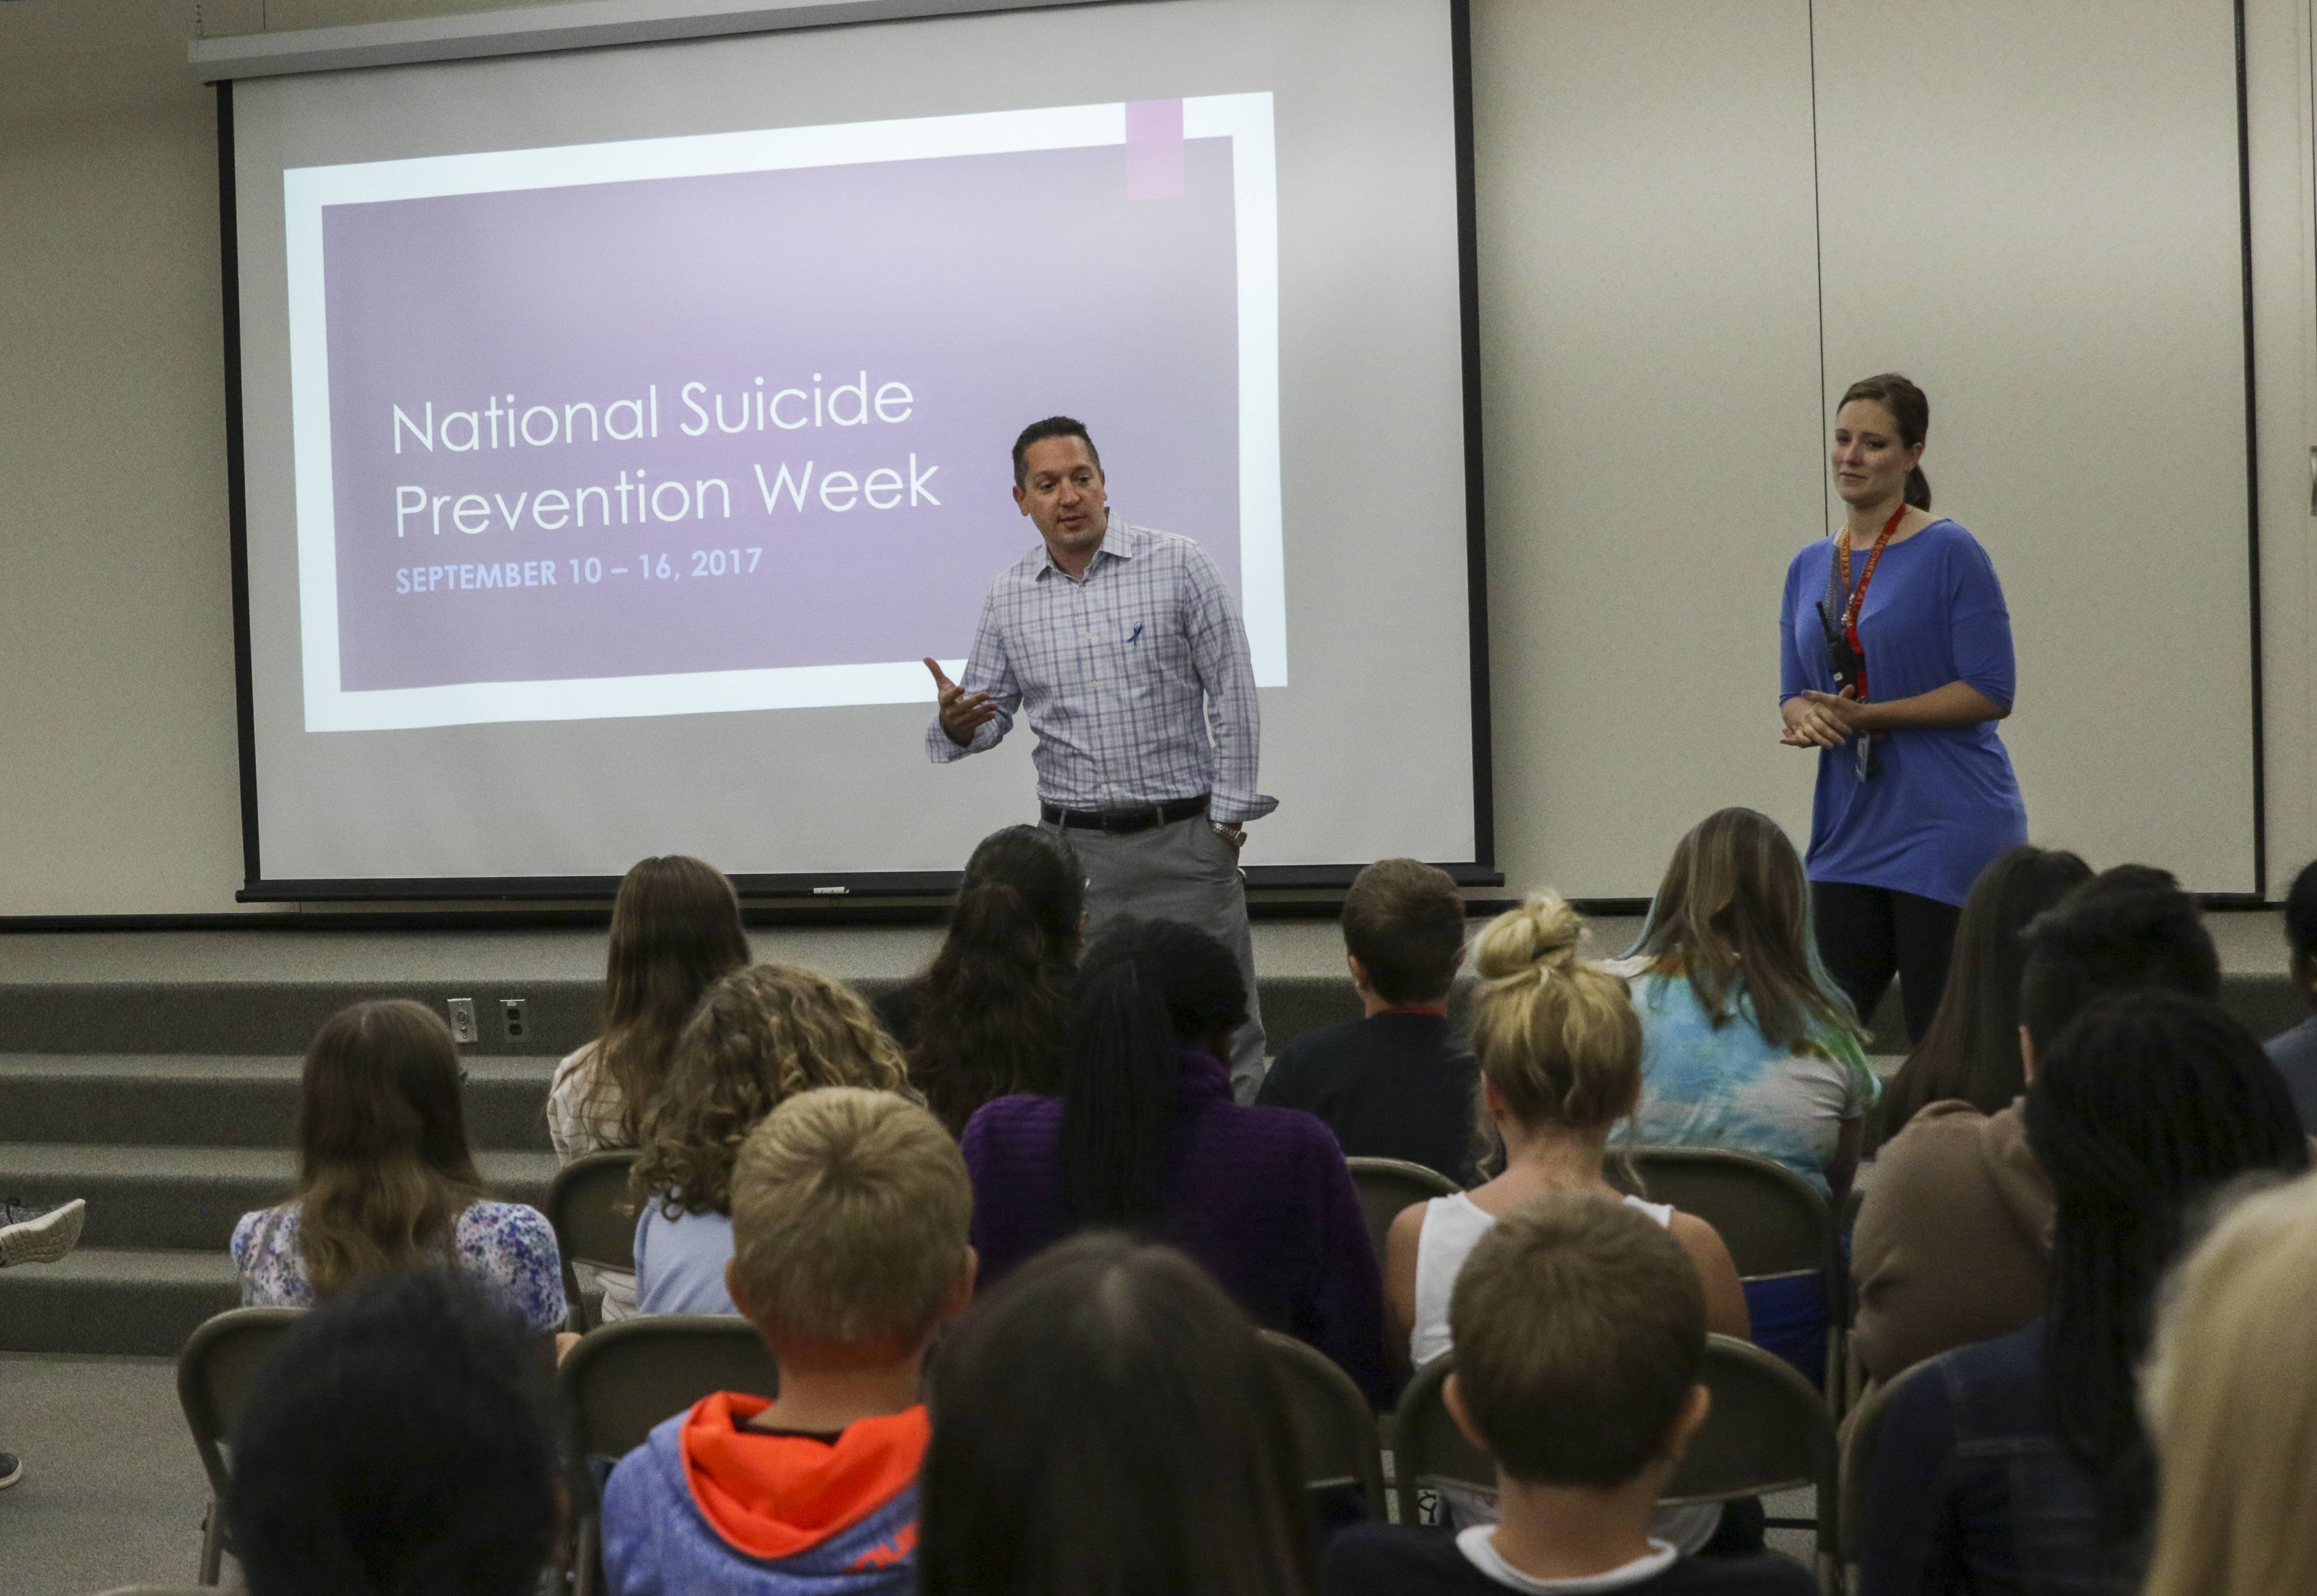 Jake Rebus, school psychologist, and Katey Kollereb, social worker at Fischer Middle School in Aurora, share suicide facts, risk factors, warning signs and prevention tips with seventh graders during a new initiative led by teacher Mary Kay Gleason, who lost her daughter to suicide nearly three years ago.